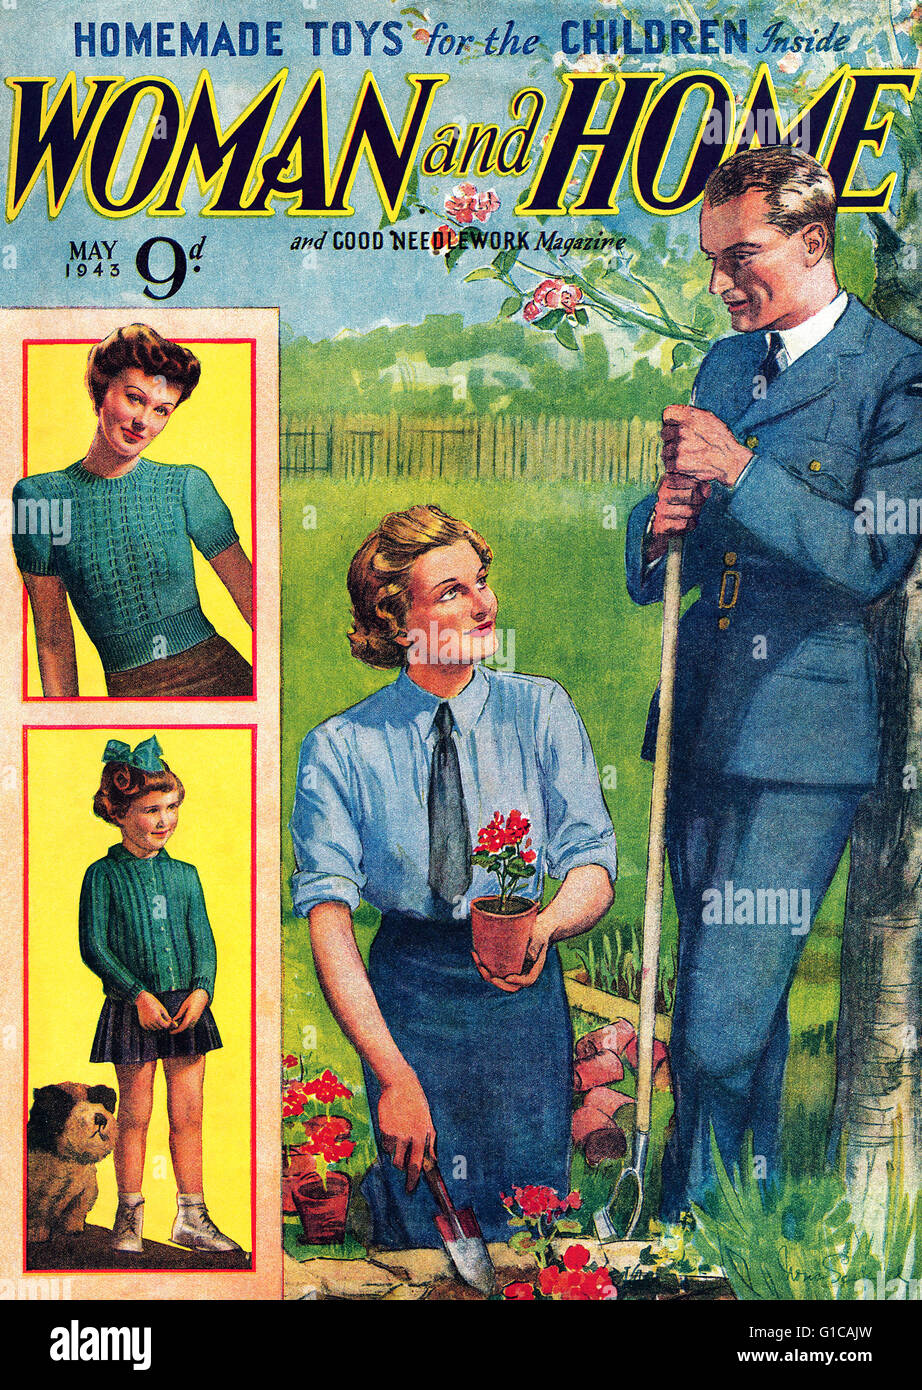 Cover of a wartime issue of Woman And Home magazine from May 1943. - Stock Image